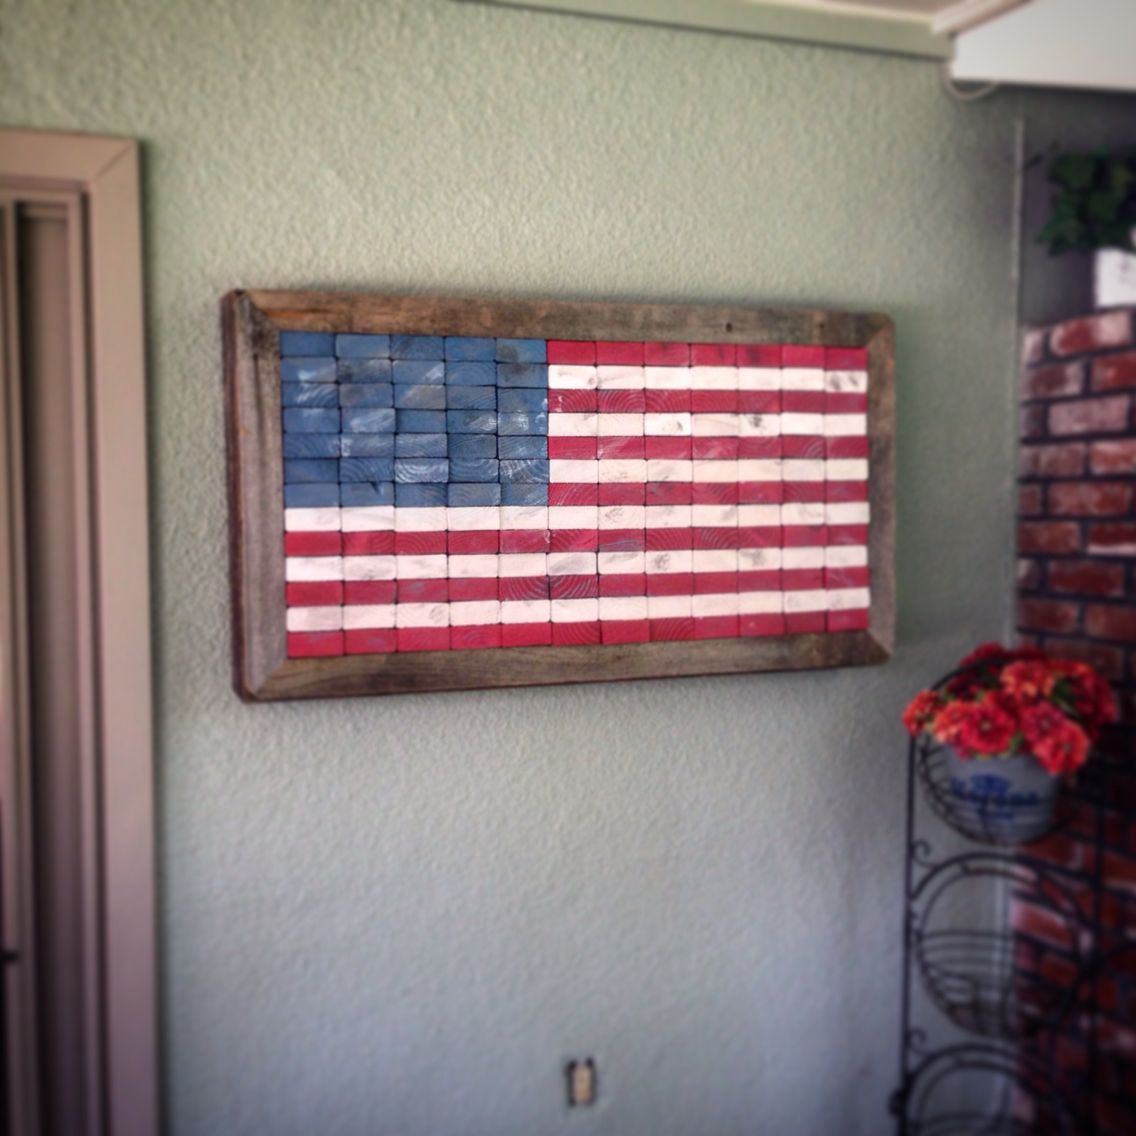 Reclaimedrepurposed 2x4 american flag framed with 30 year old reclaimedrepurposed 2x4 american flag framed with 30 year old fence boards baanklon Image collections